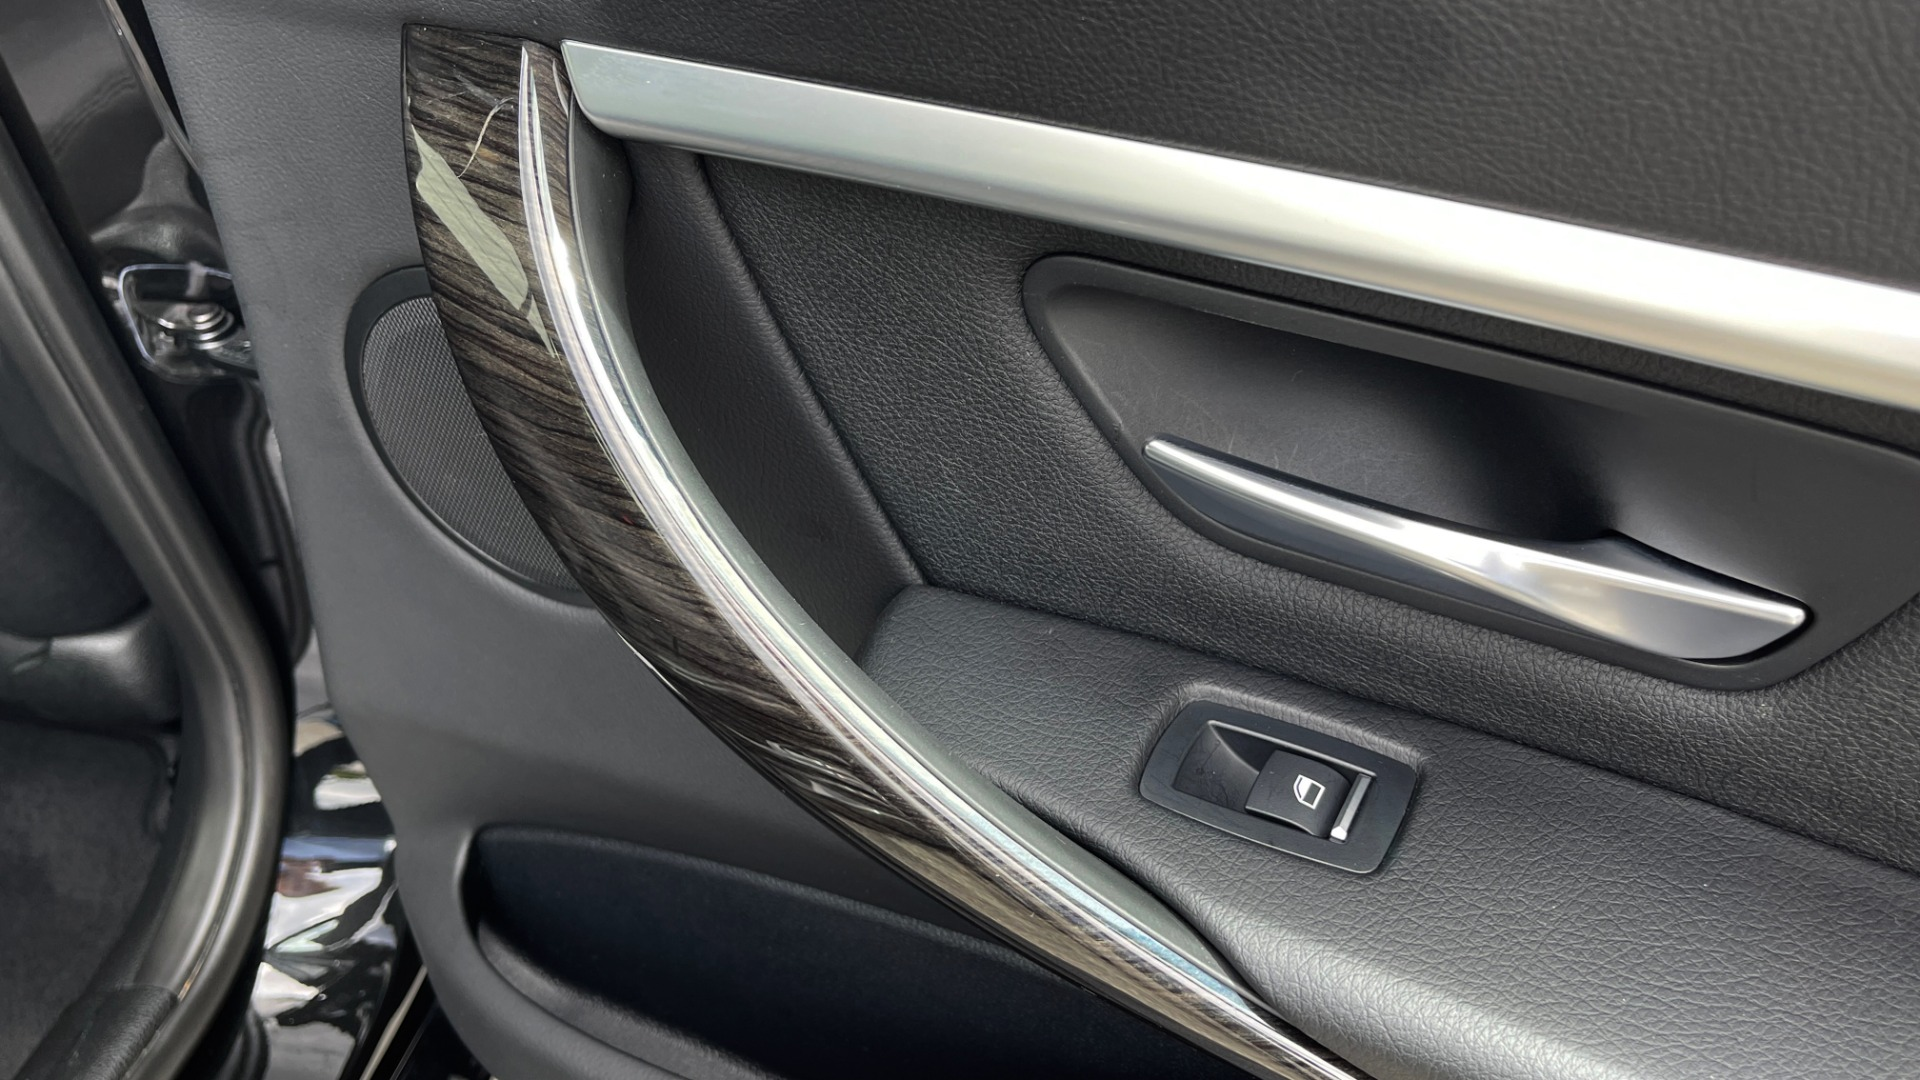 Used 2018 BMW 3 SERIES 330IXDRIVE / NAV / CONV PKG / ABSD / SUNROOF / REARVIEW for sale $29,599 at Formula Imports in Charlotte NC 28227 56